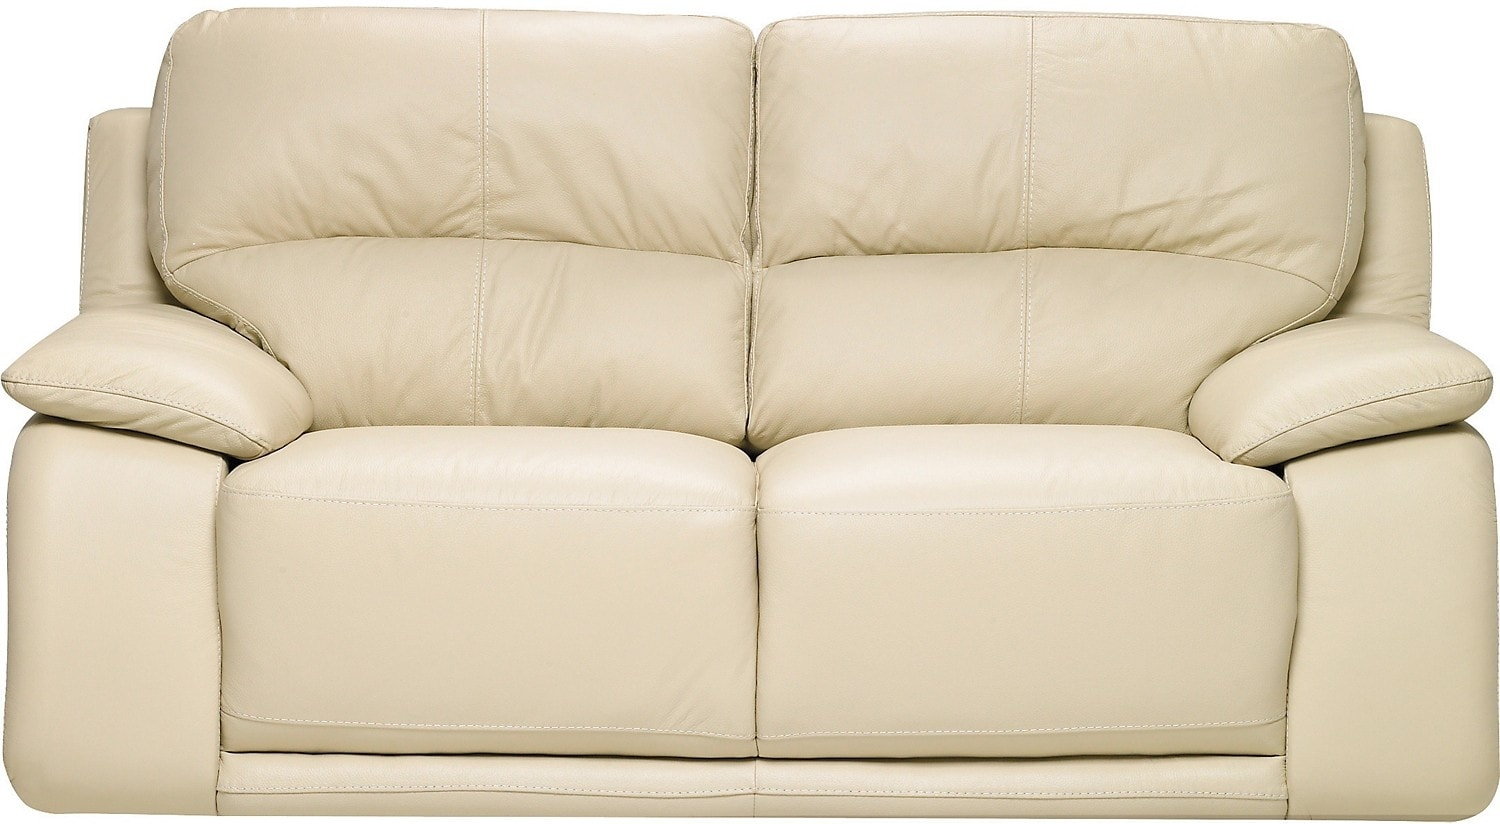 Chateau d'Ax 100% Genuine Leather Loveseat - Ivory